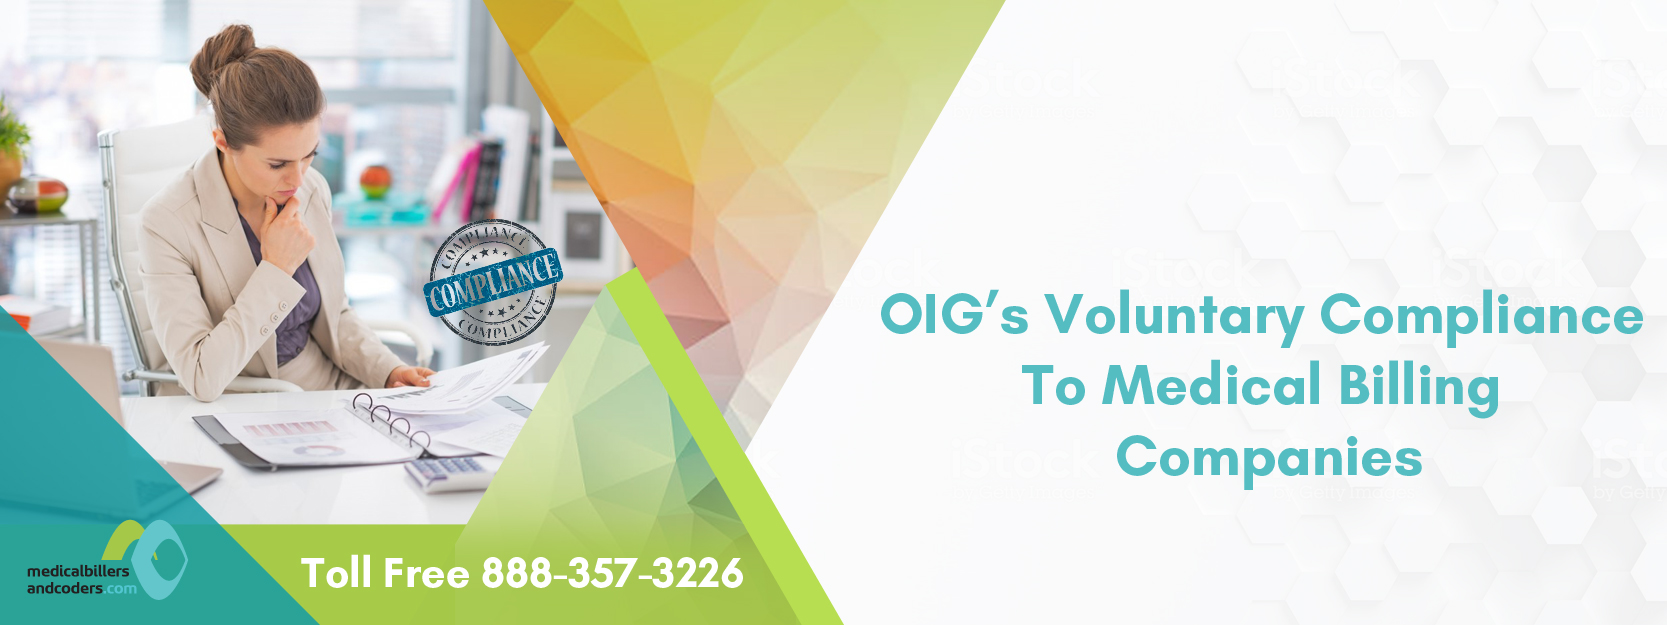 blog-oigs-voluntary-compliance-to-medical-billing-companies